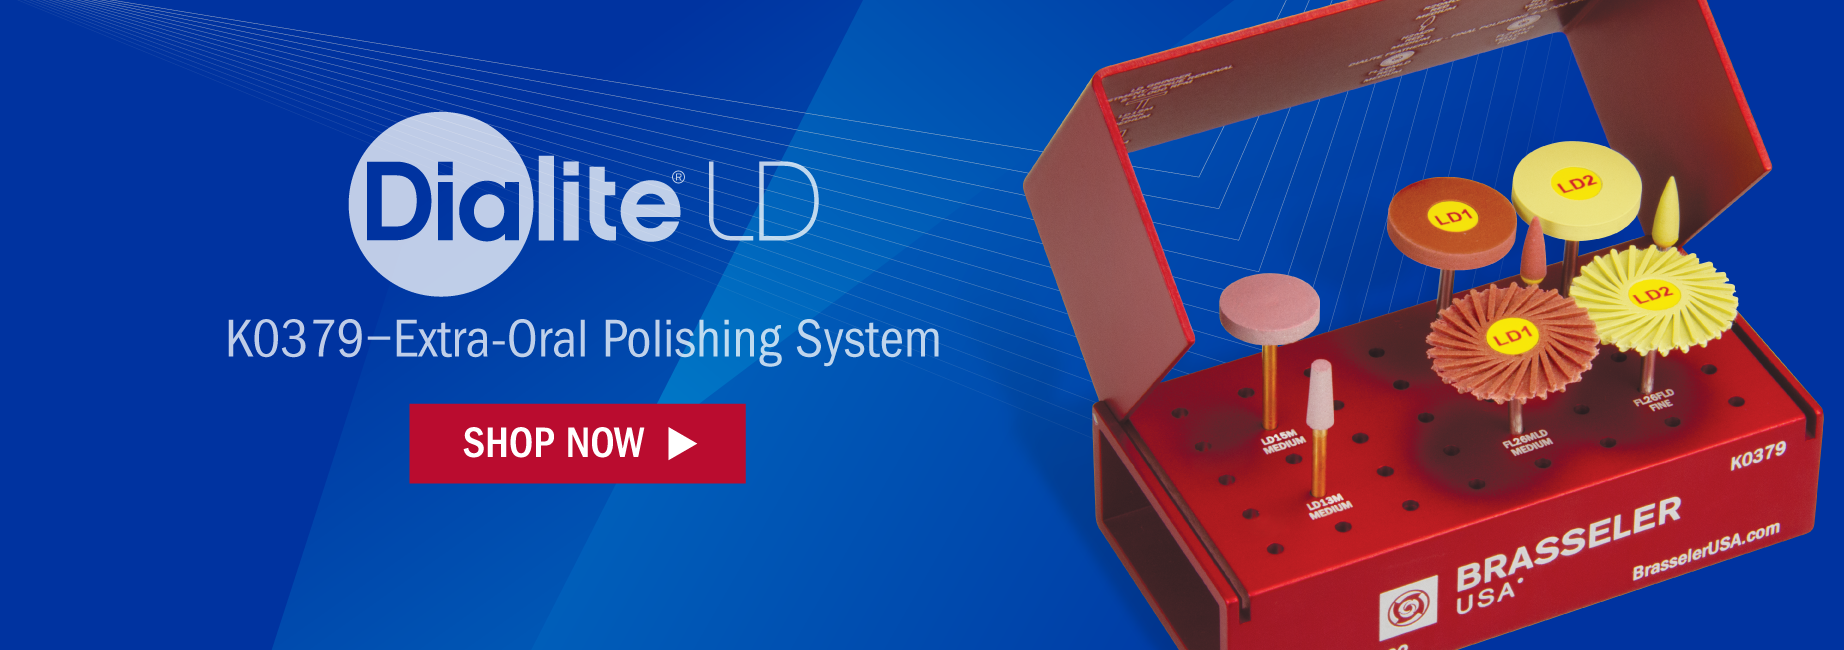 Dialite LD (Lithium Disilicate) Extra-Oral Adjusting and Polishing System